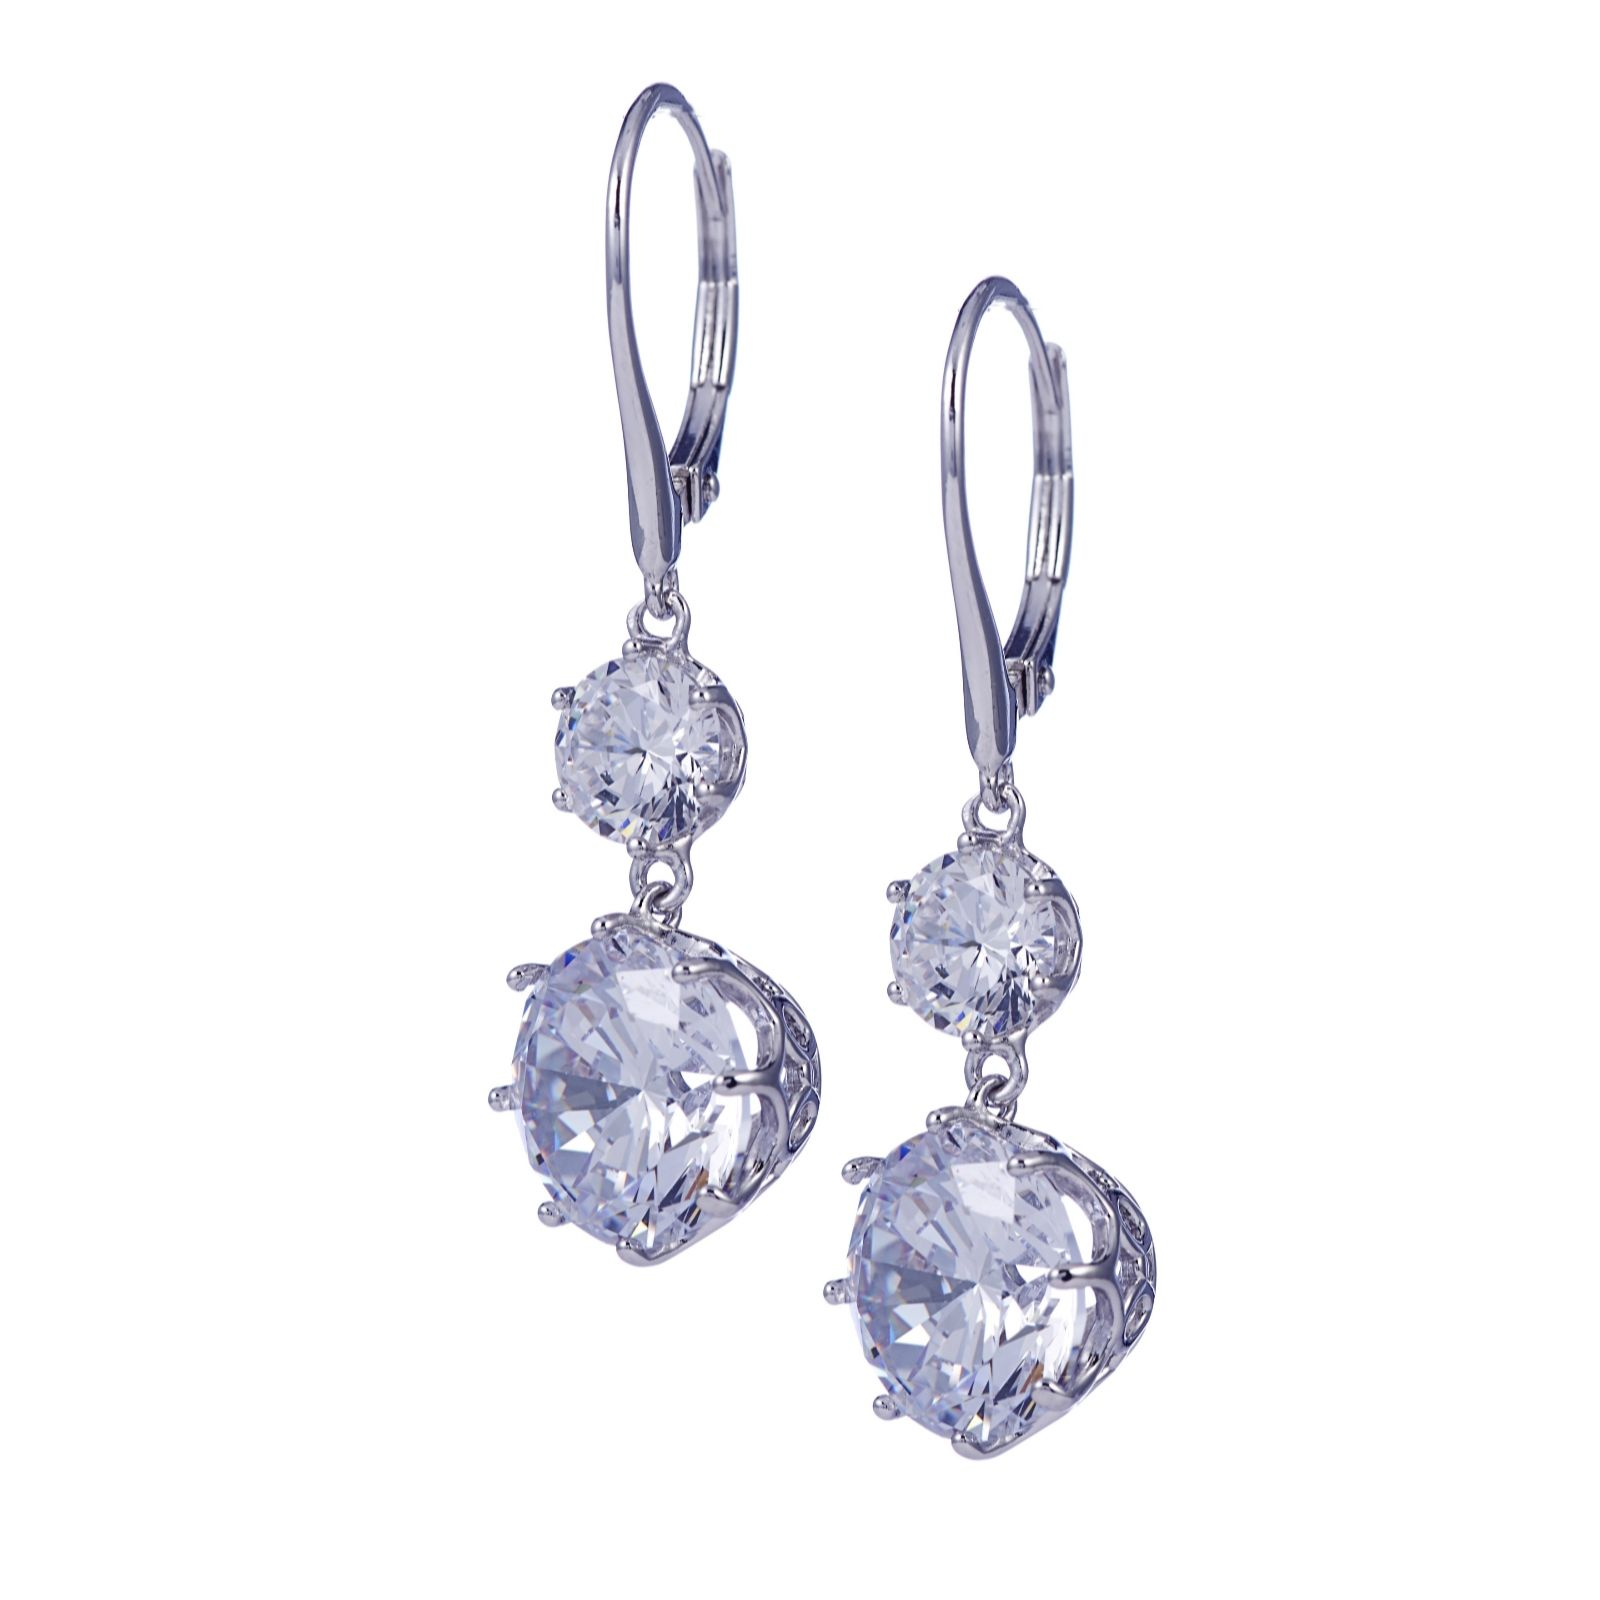 56af6f7c6 Michelle Mone for Diamonique 9.4ct tw Leverback Earrings Sterling ...